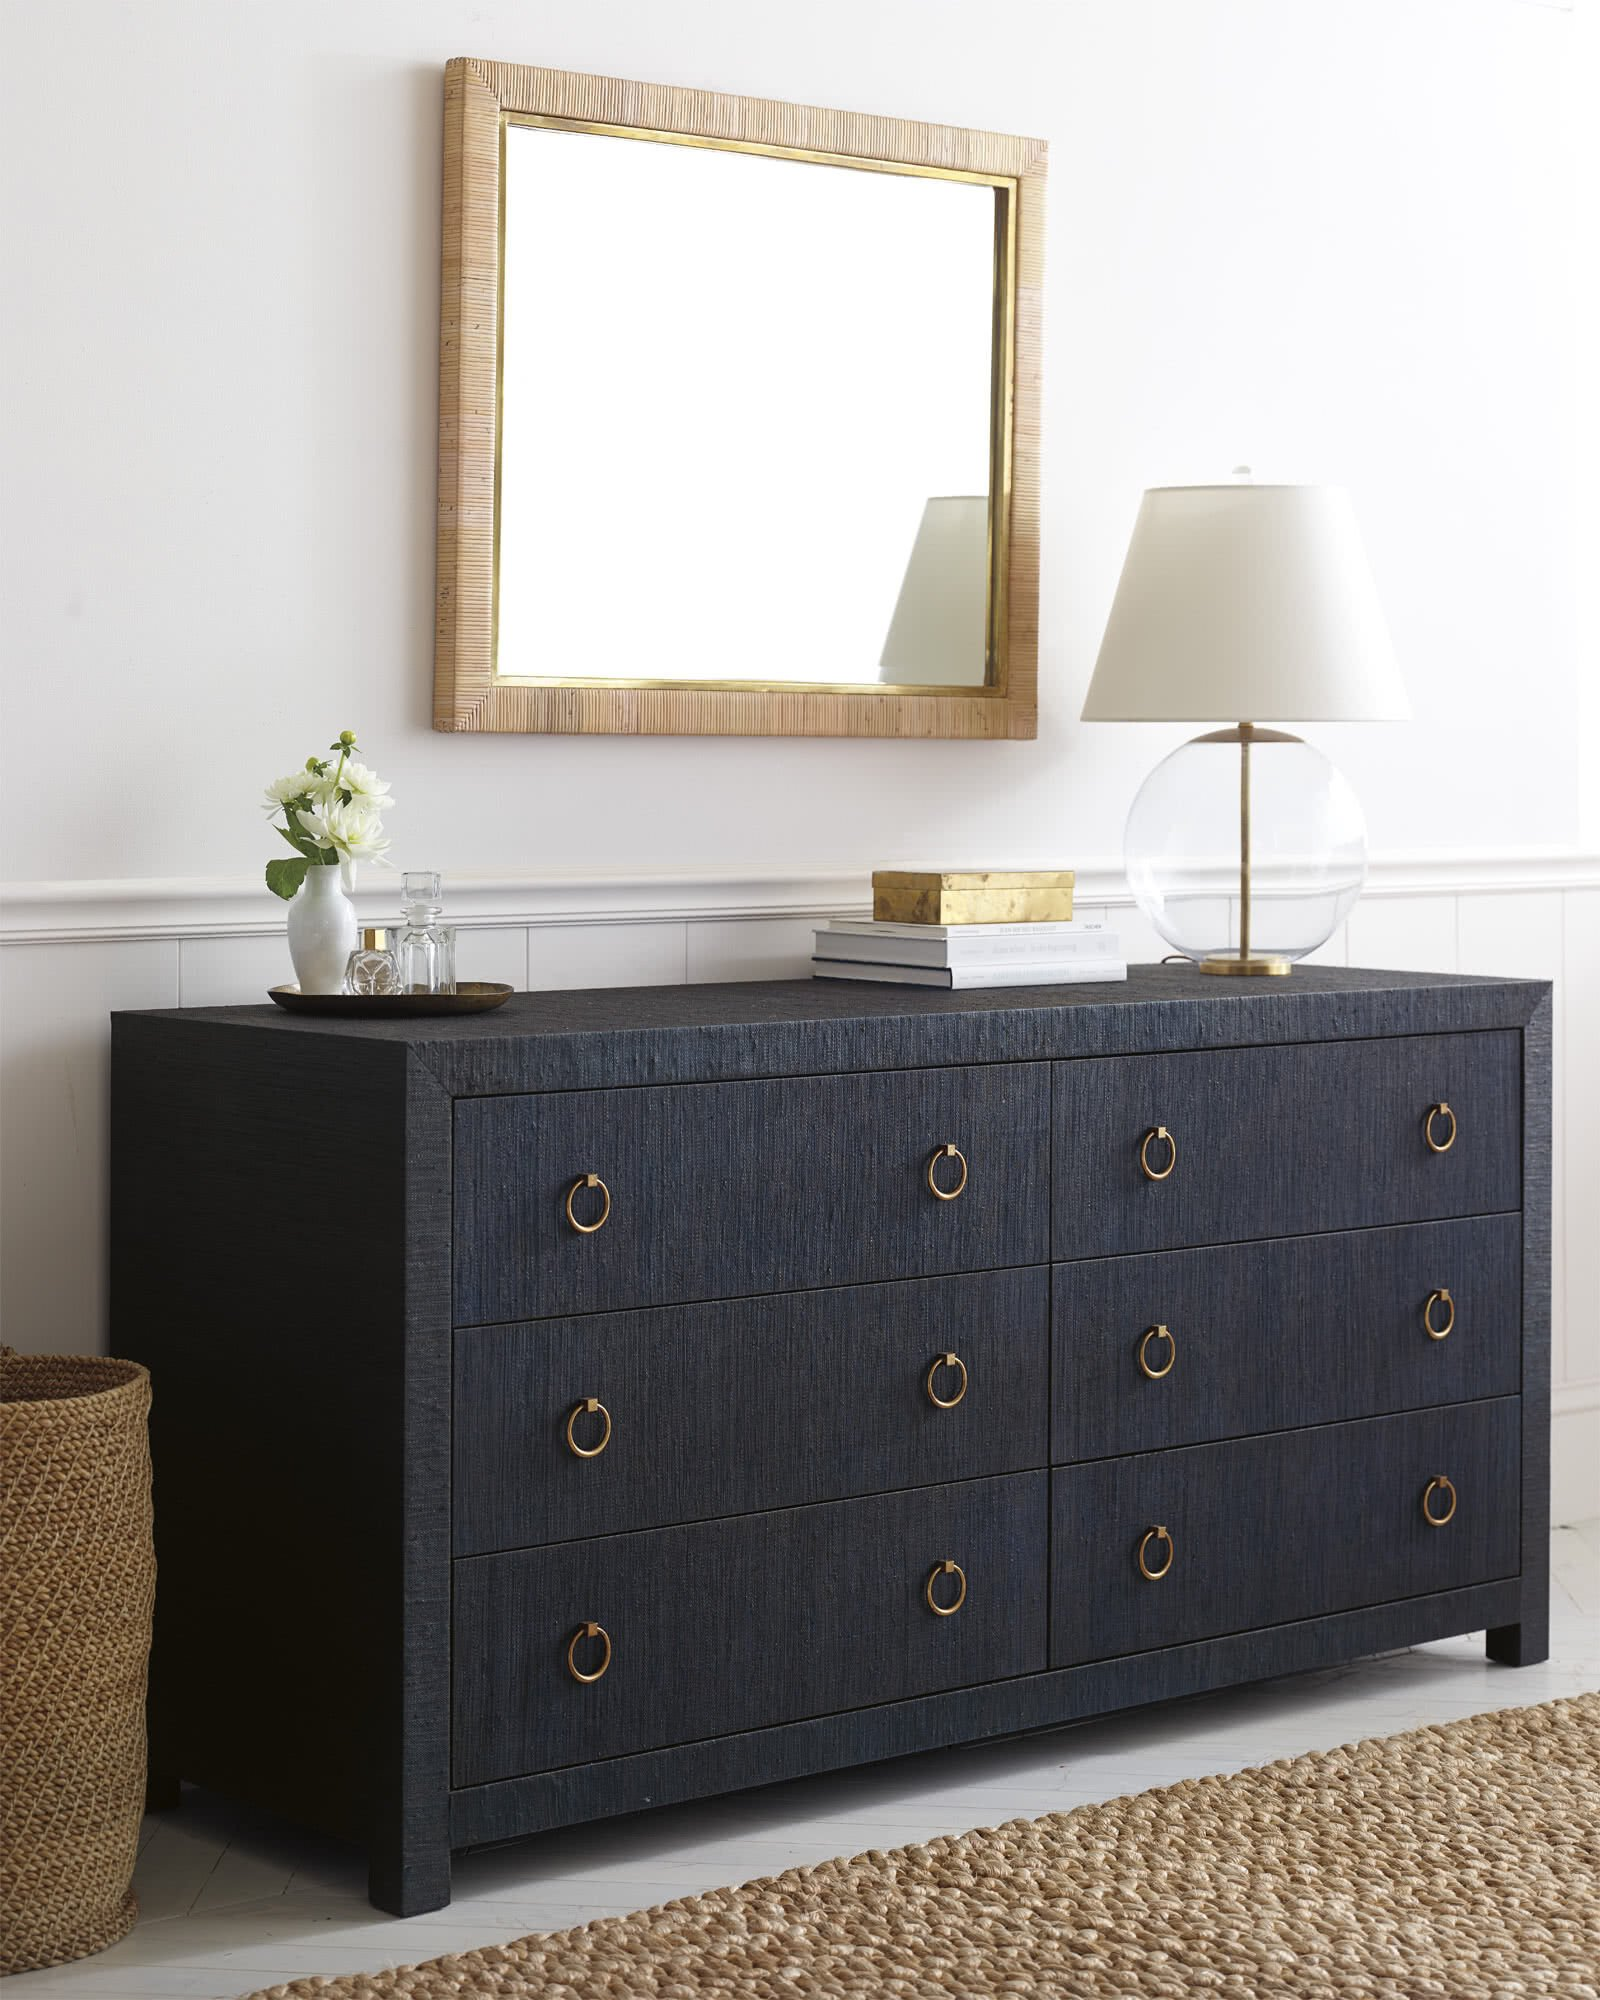 navy blue raffia wrapped six drawer dresser with gold hardware and sisal rug in front with glass and gold lamp on top